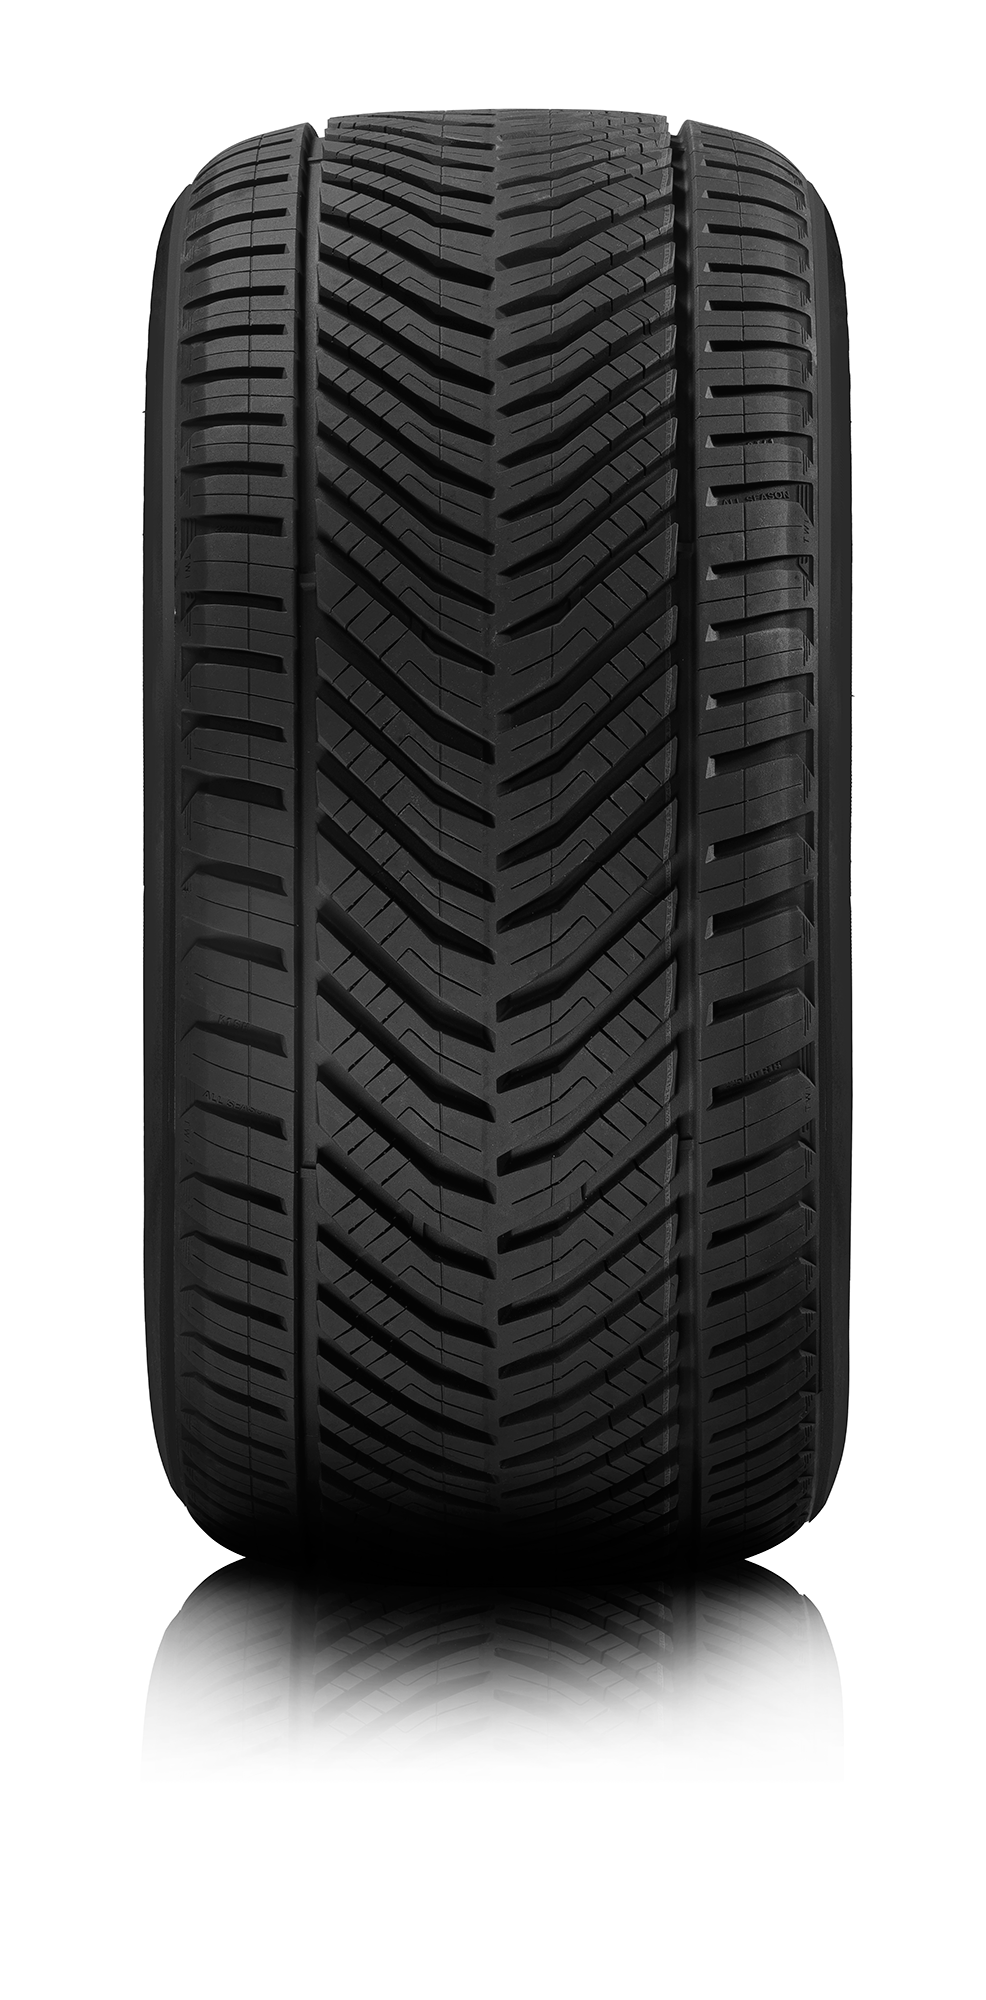 Gomme Nuove Orium 205/55 R16 94V ALL SEASON XL M+S pneumatici nuovi All Season